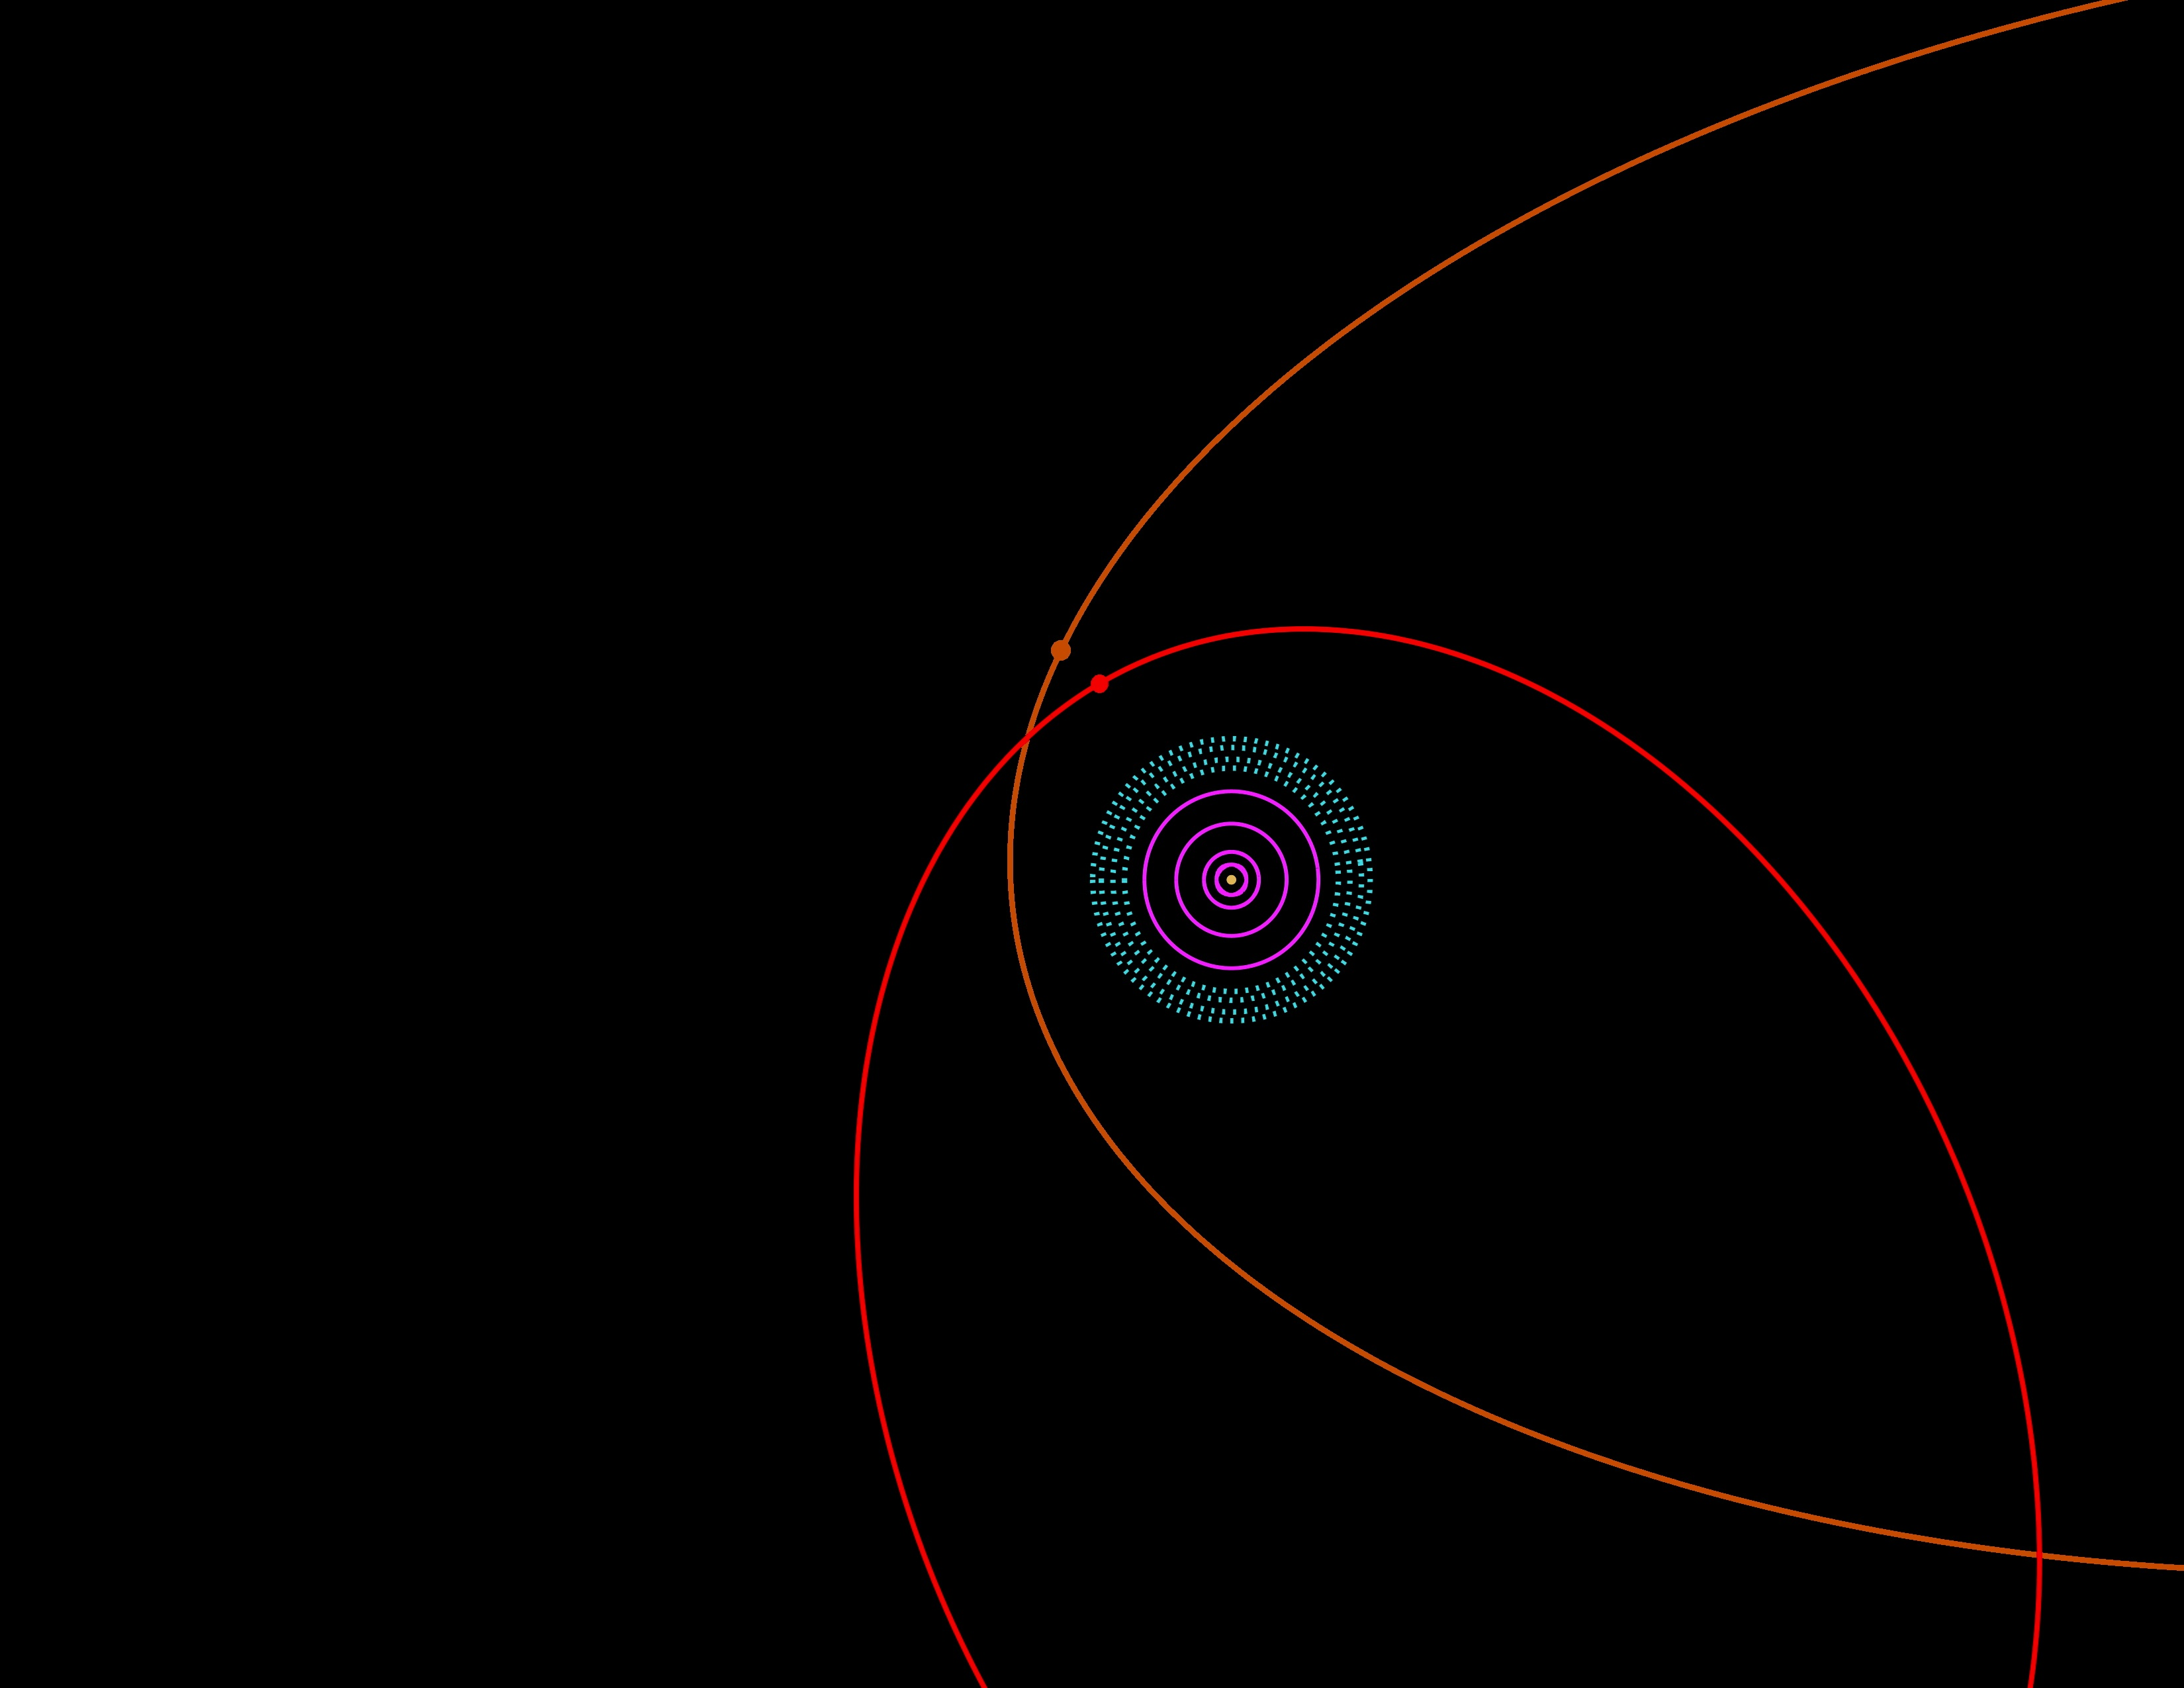 outer solar system orbits - photo #12